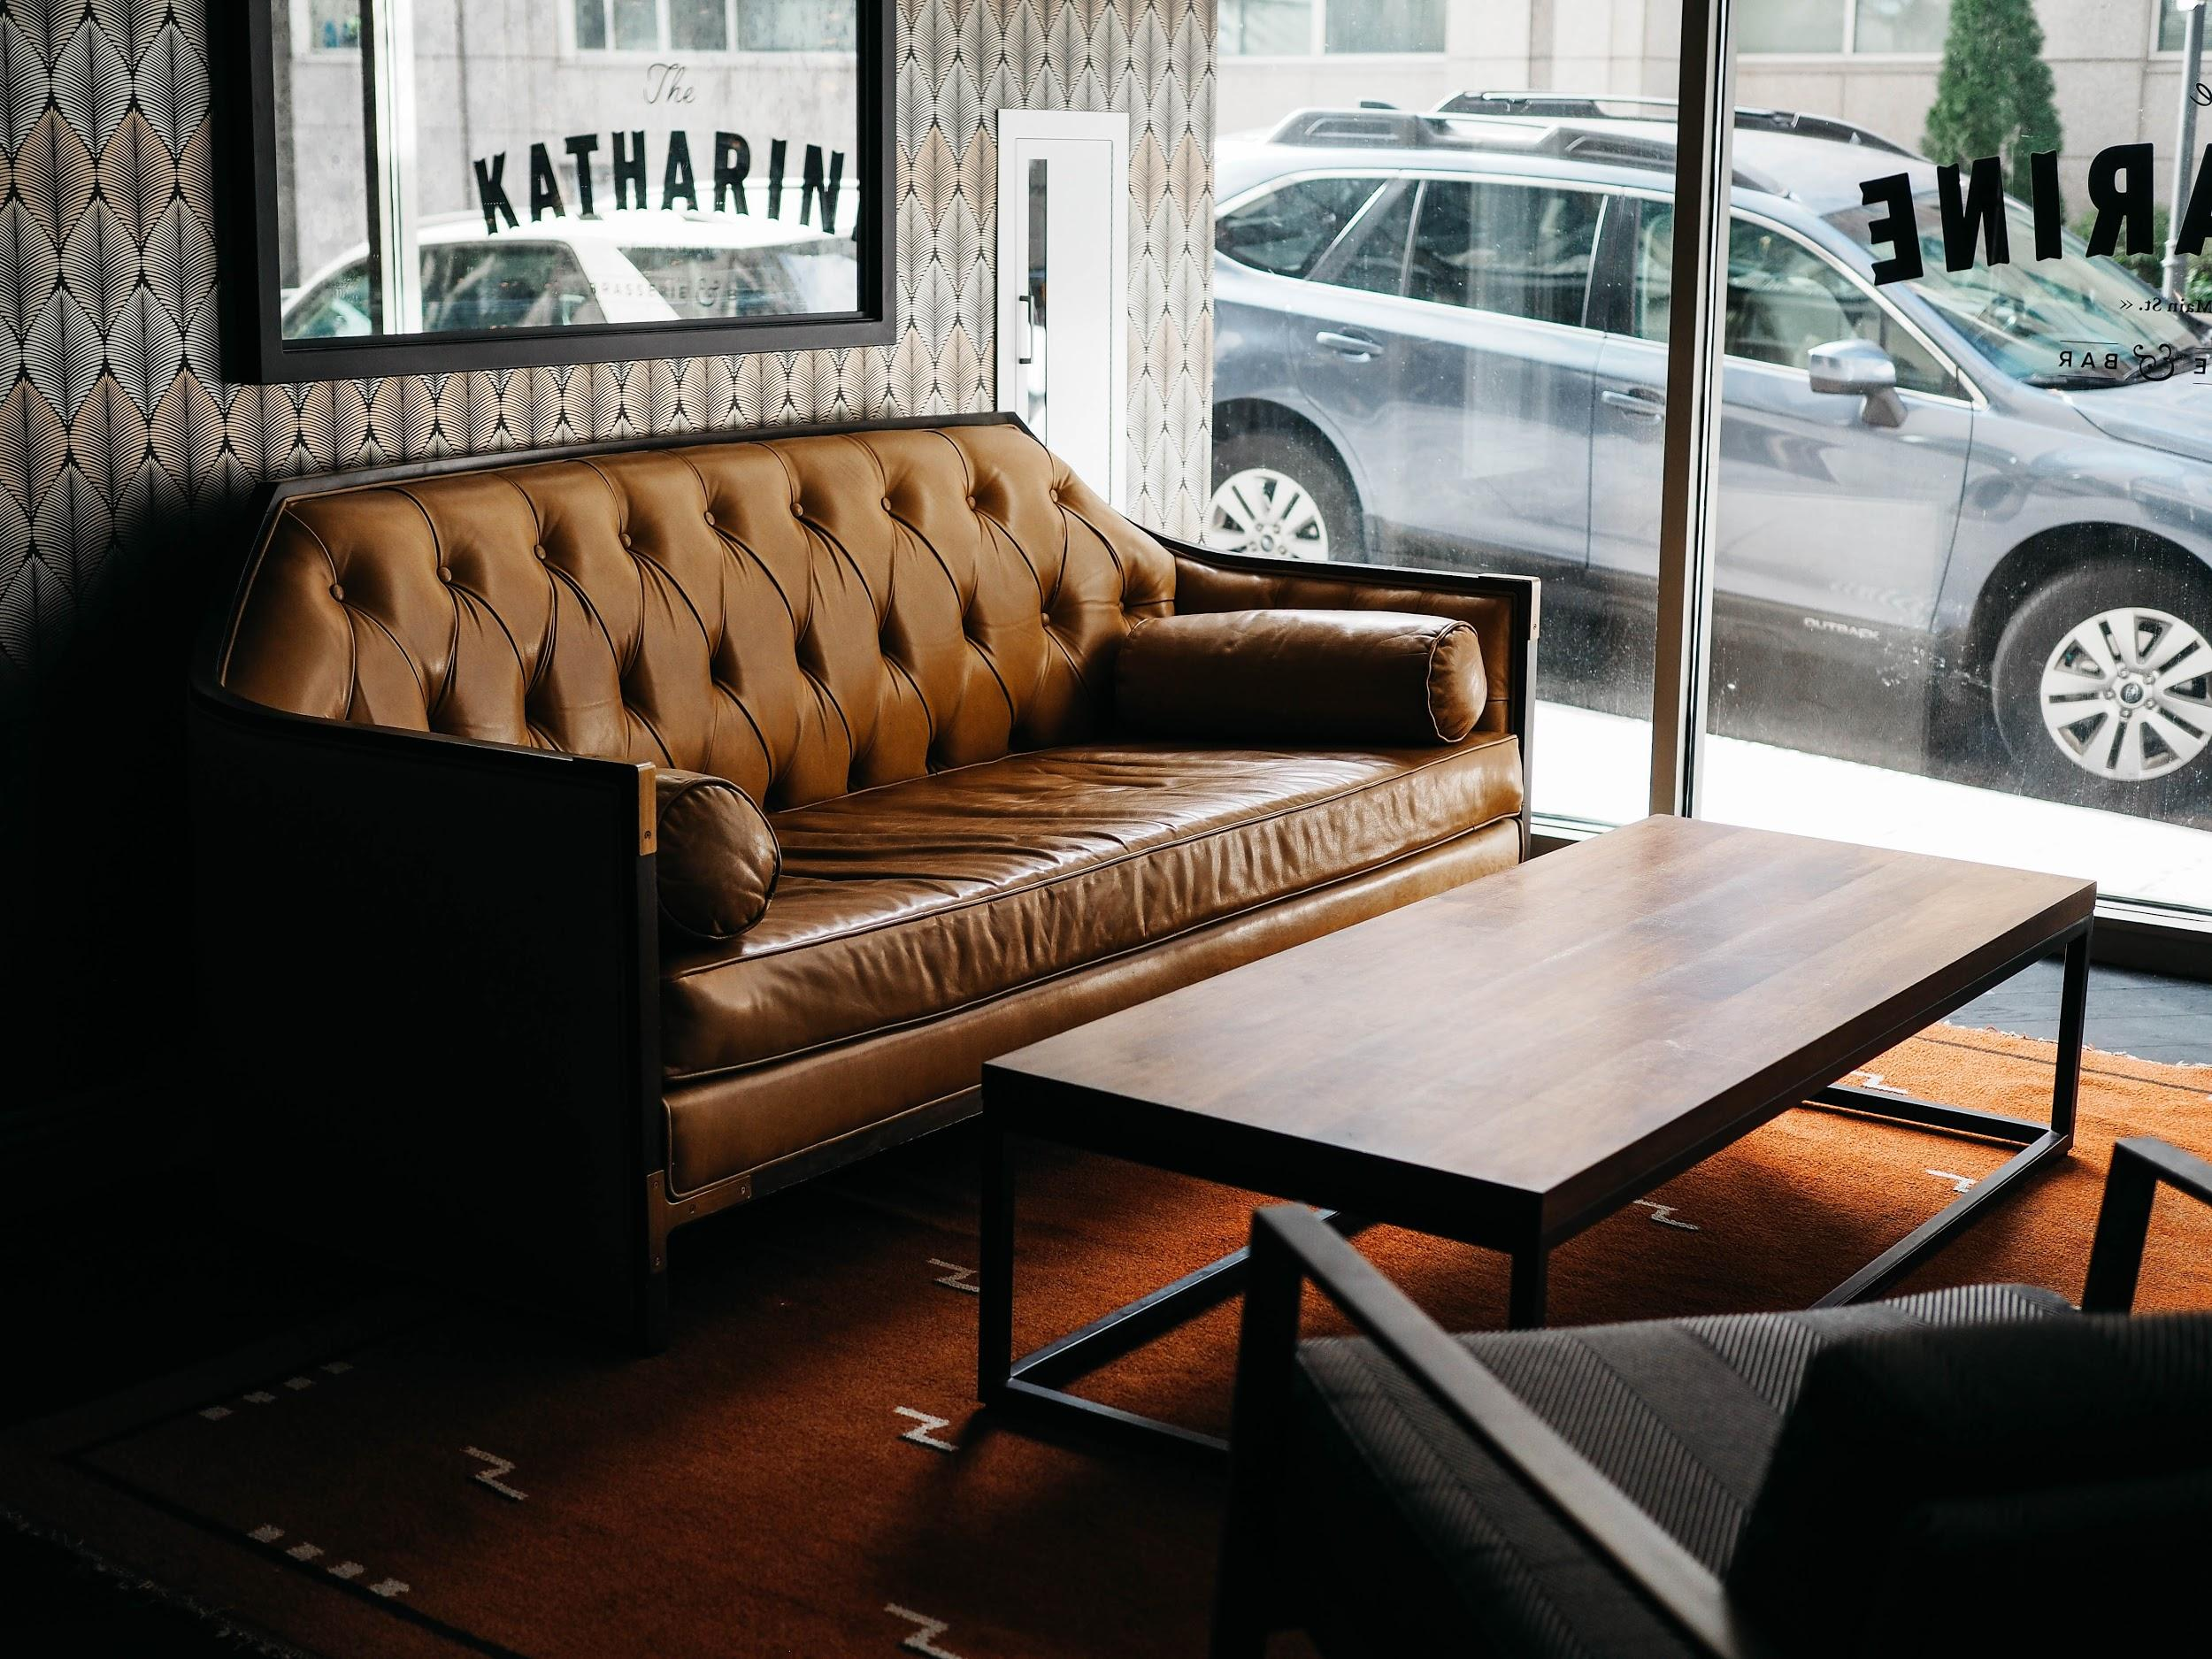 Couch in a coffee shop